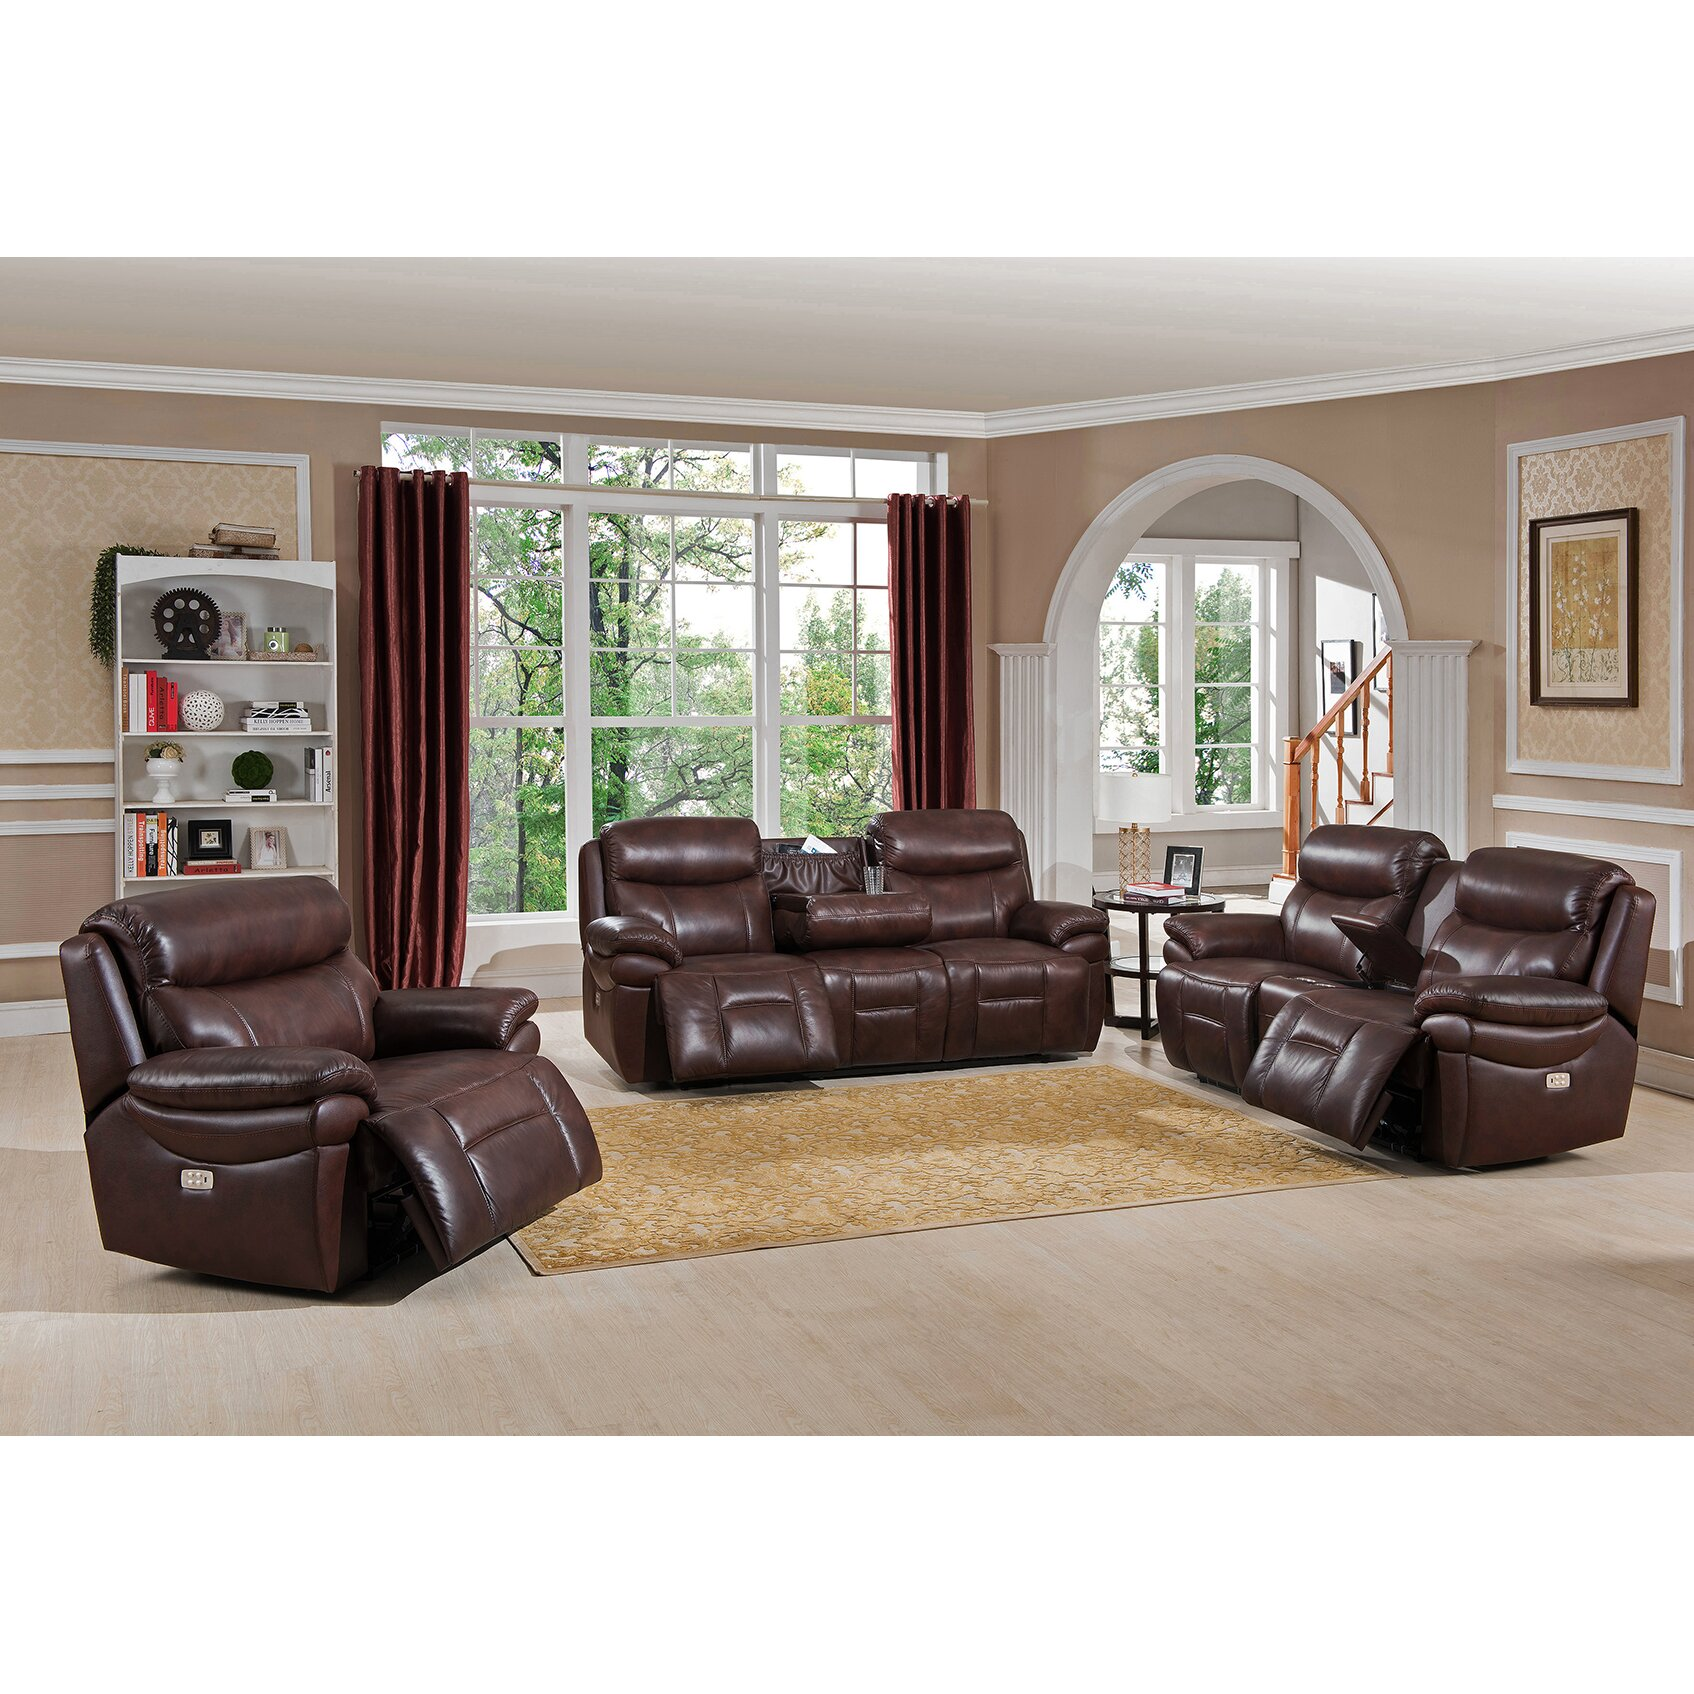 Amax sanford 3 piece leather power reclining living room for Leather living room sets